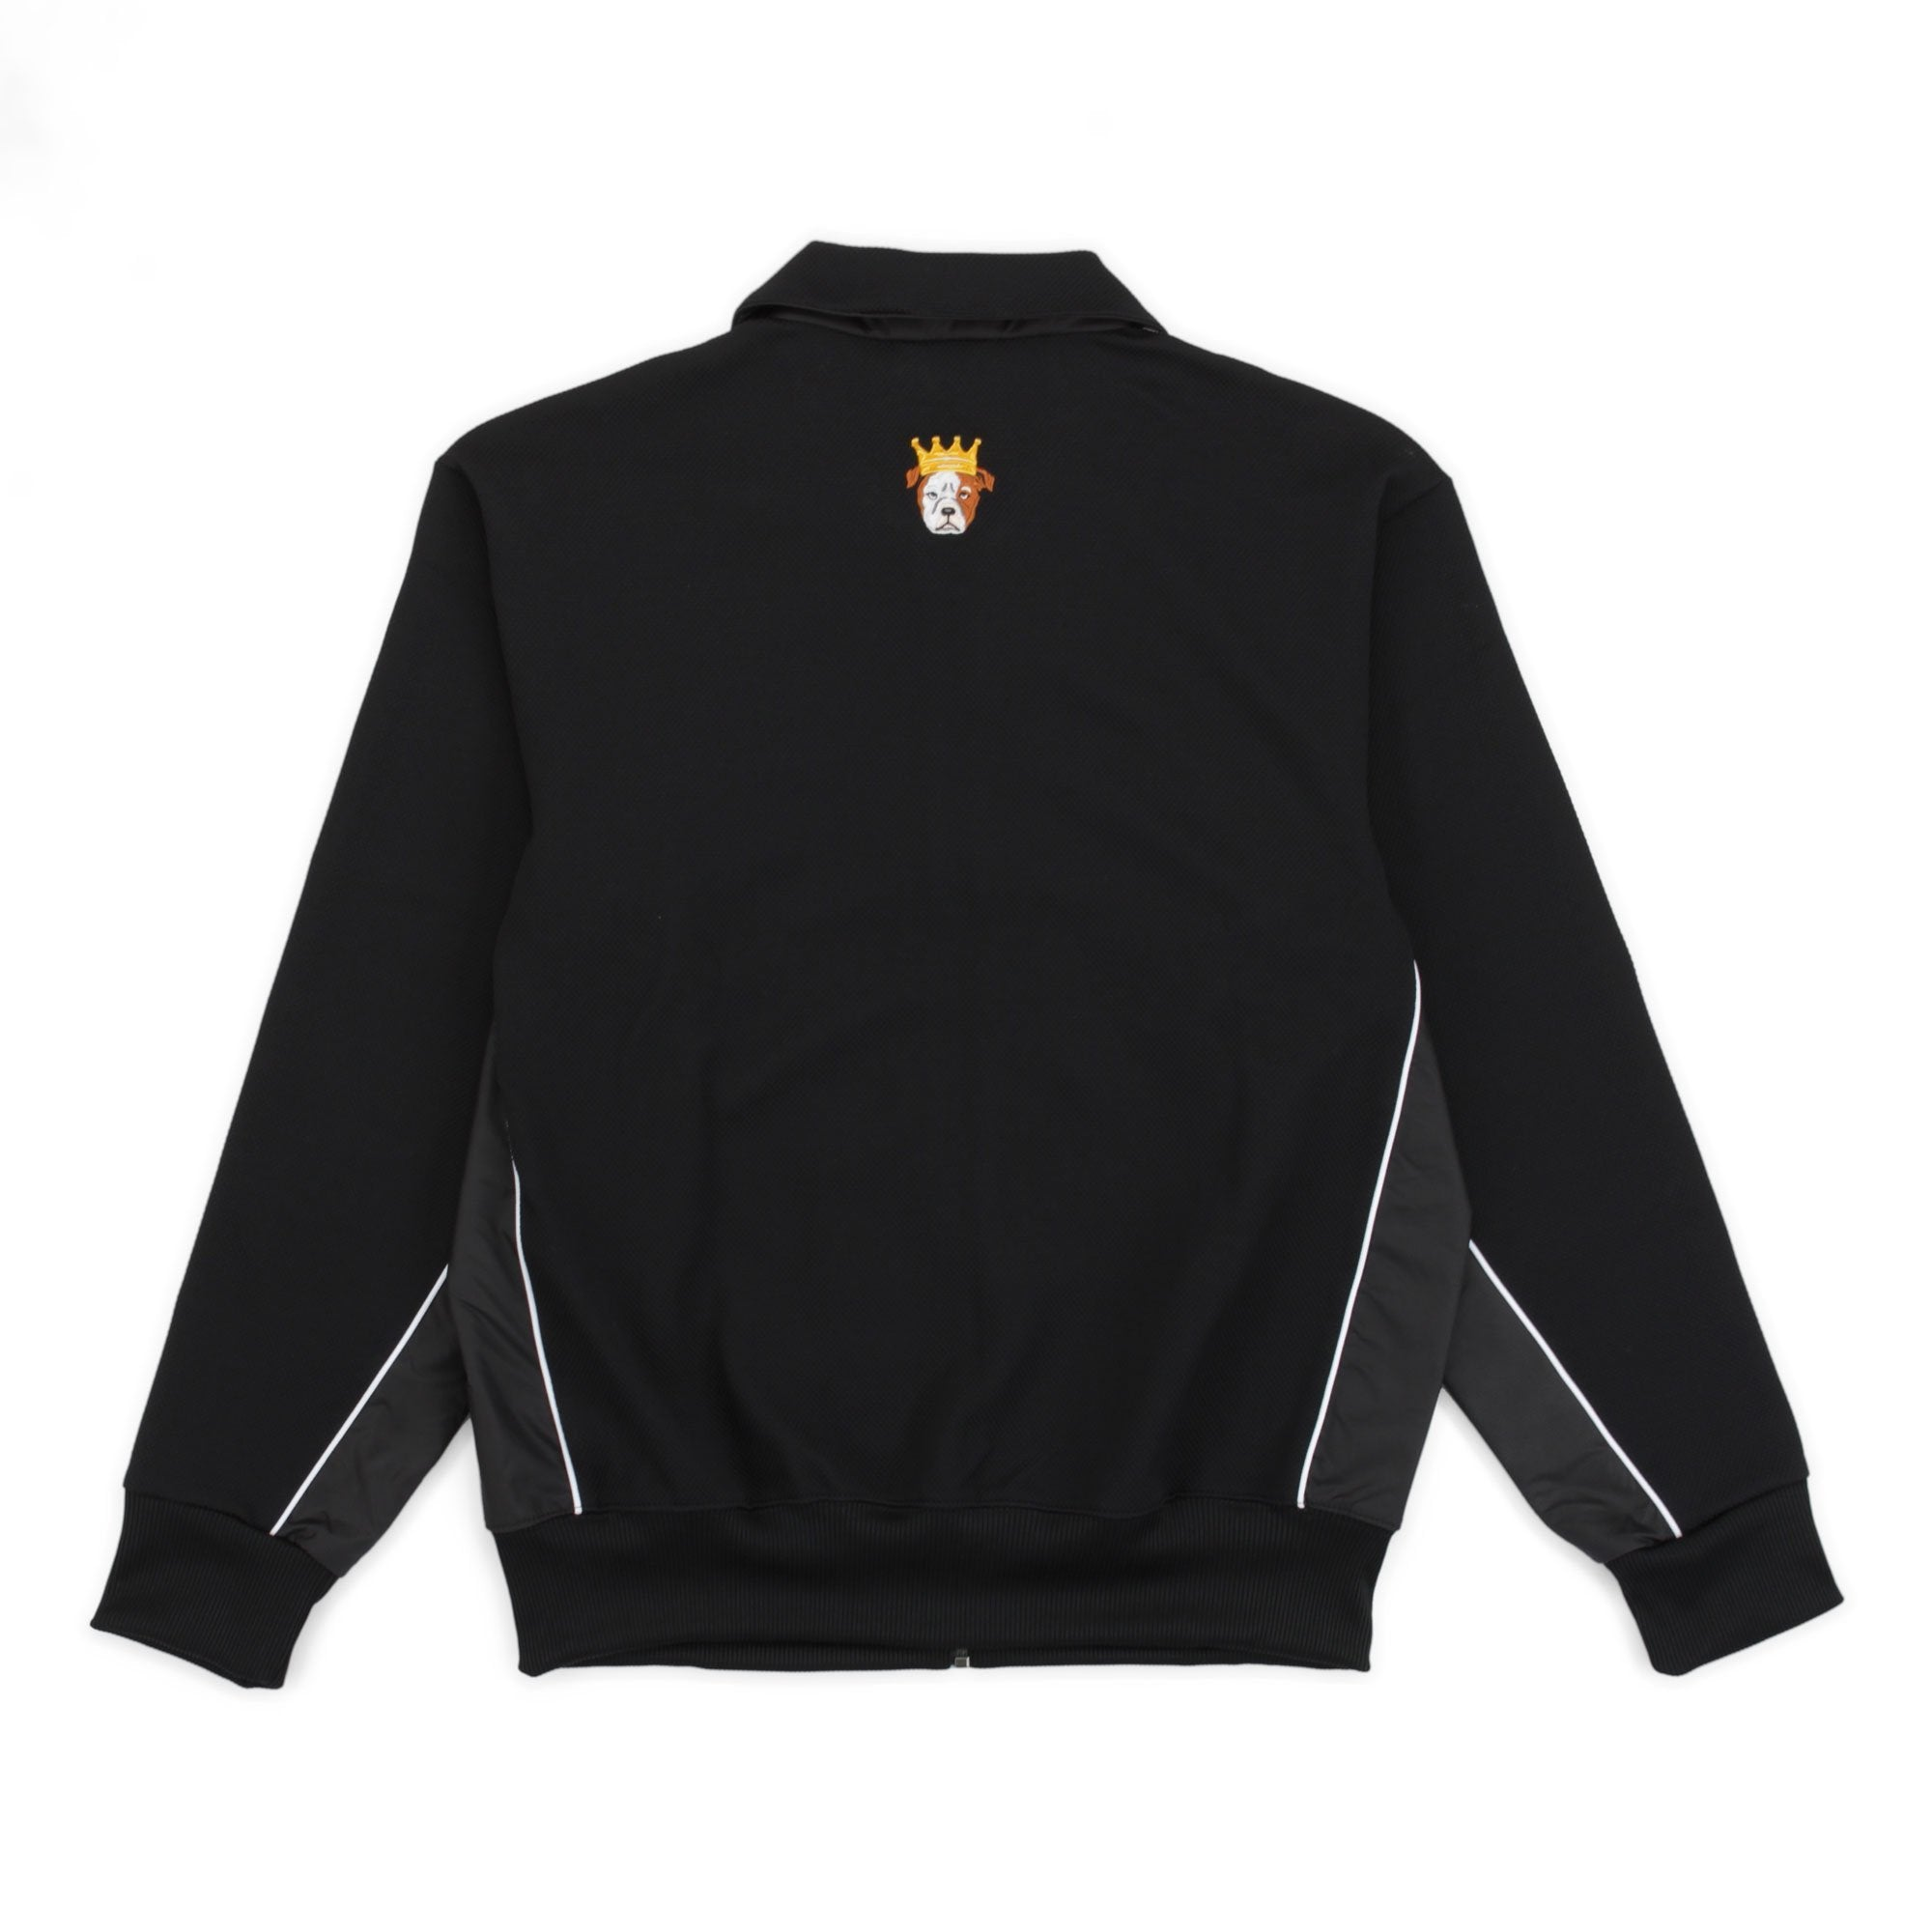 Adidas Tj Firebird Jacket Product Photo #3